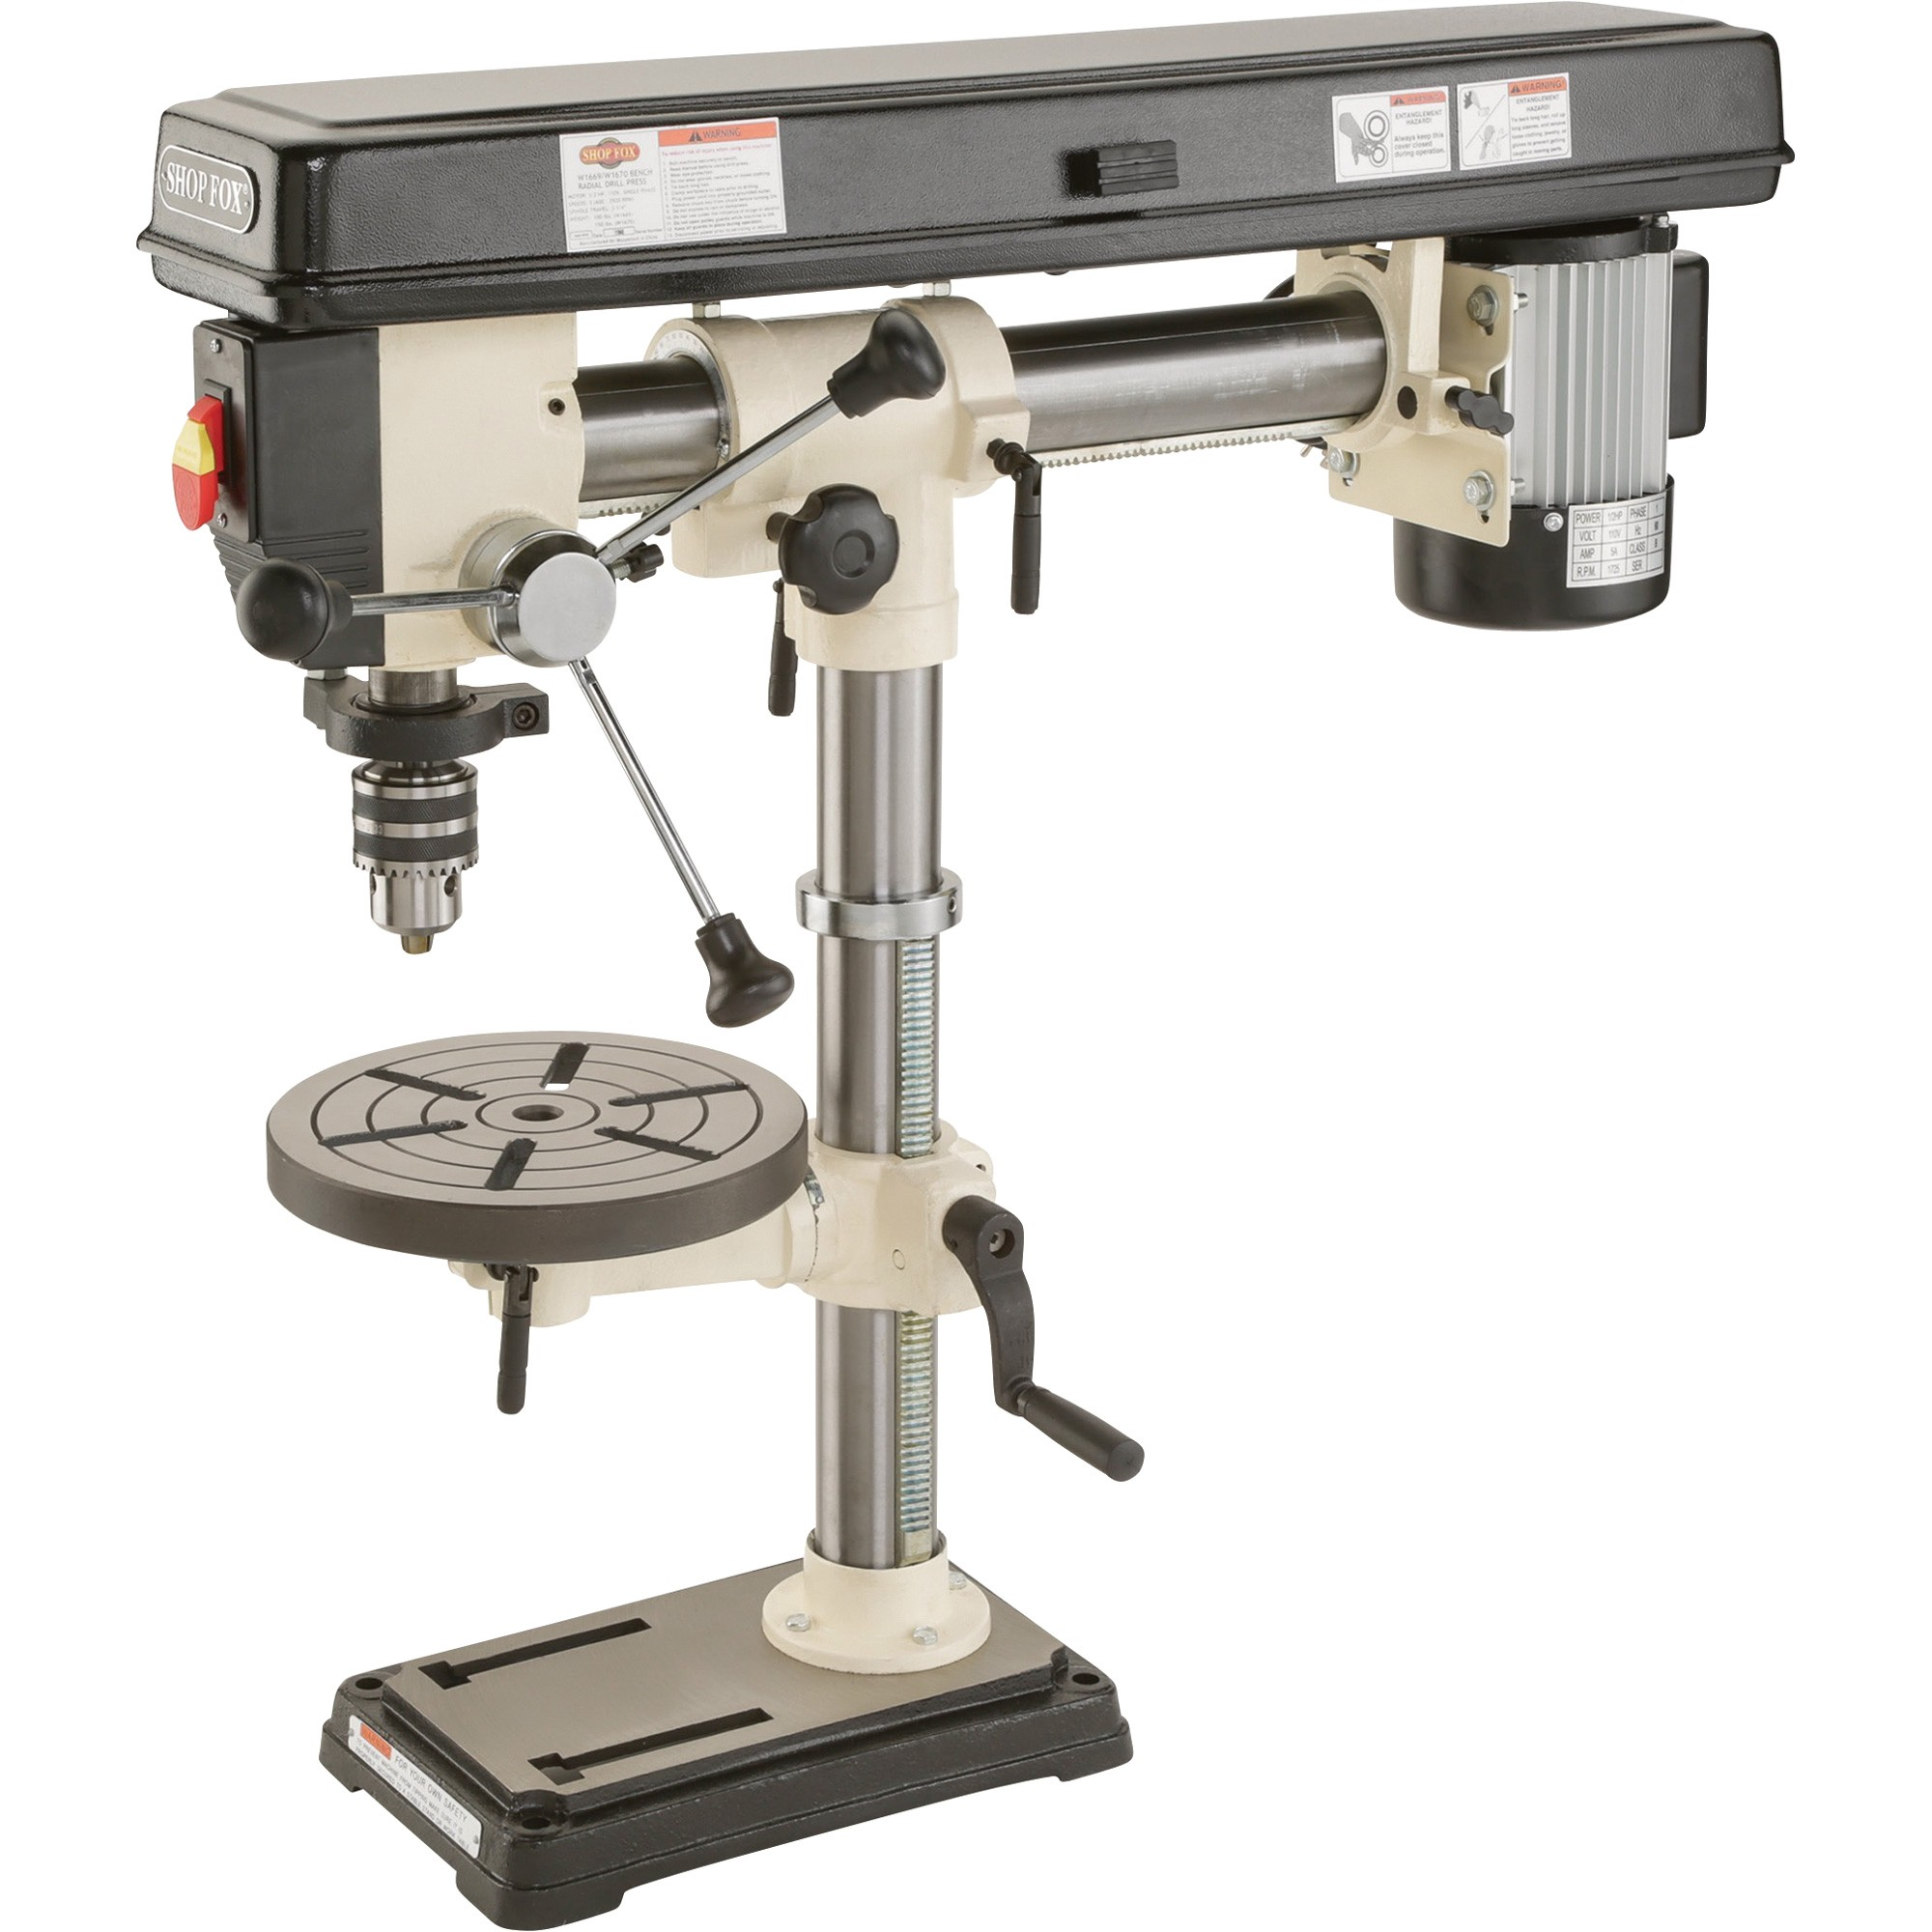 Klutch drill press